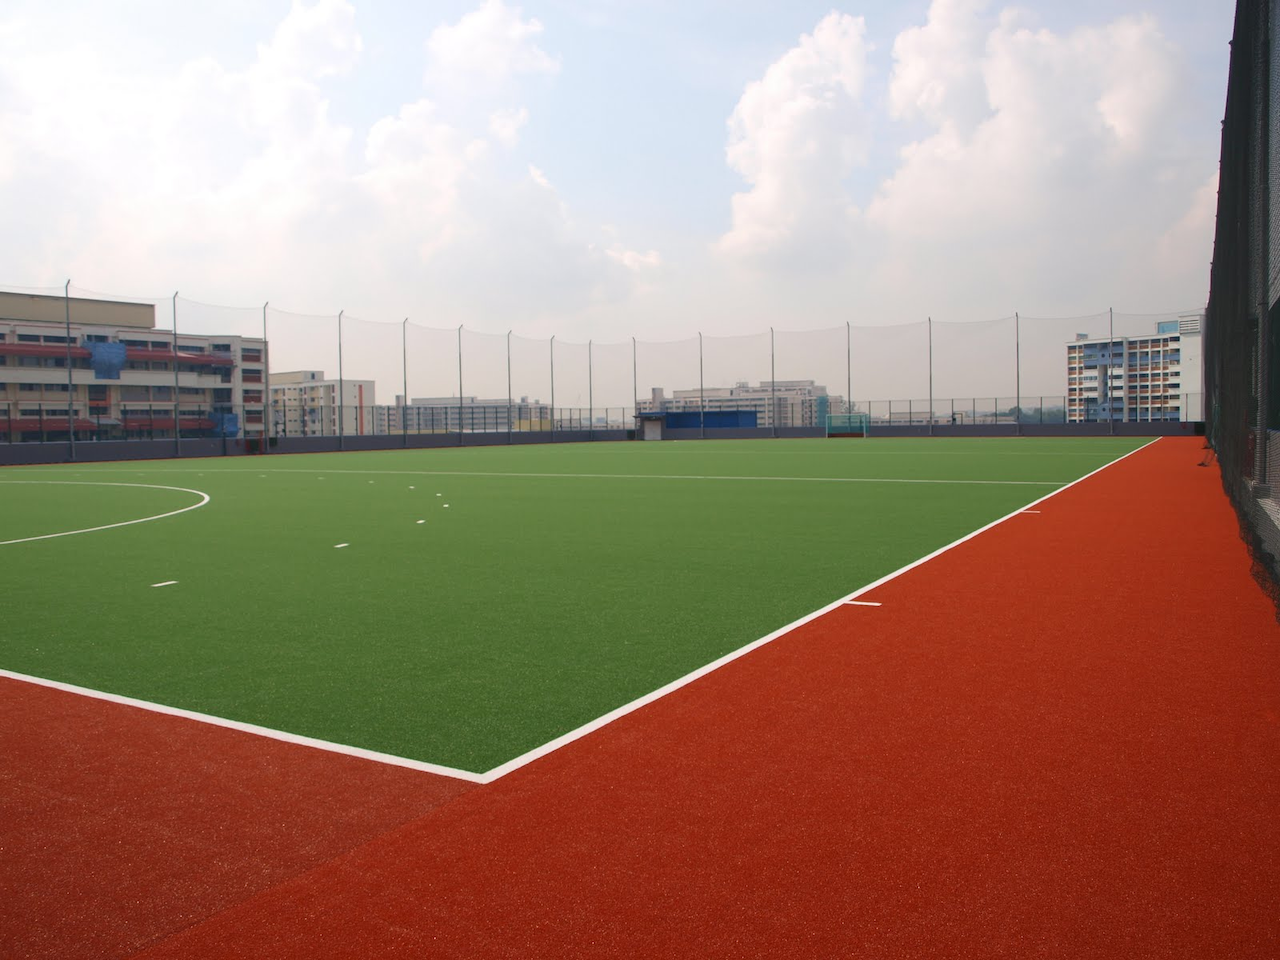 coolest schools in Singapore - St Hilda Primary School rooftop hockey pitch